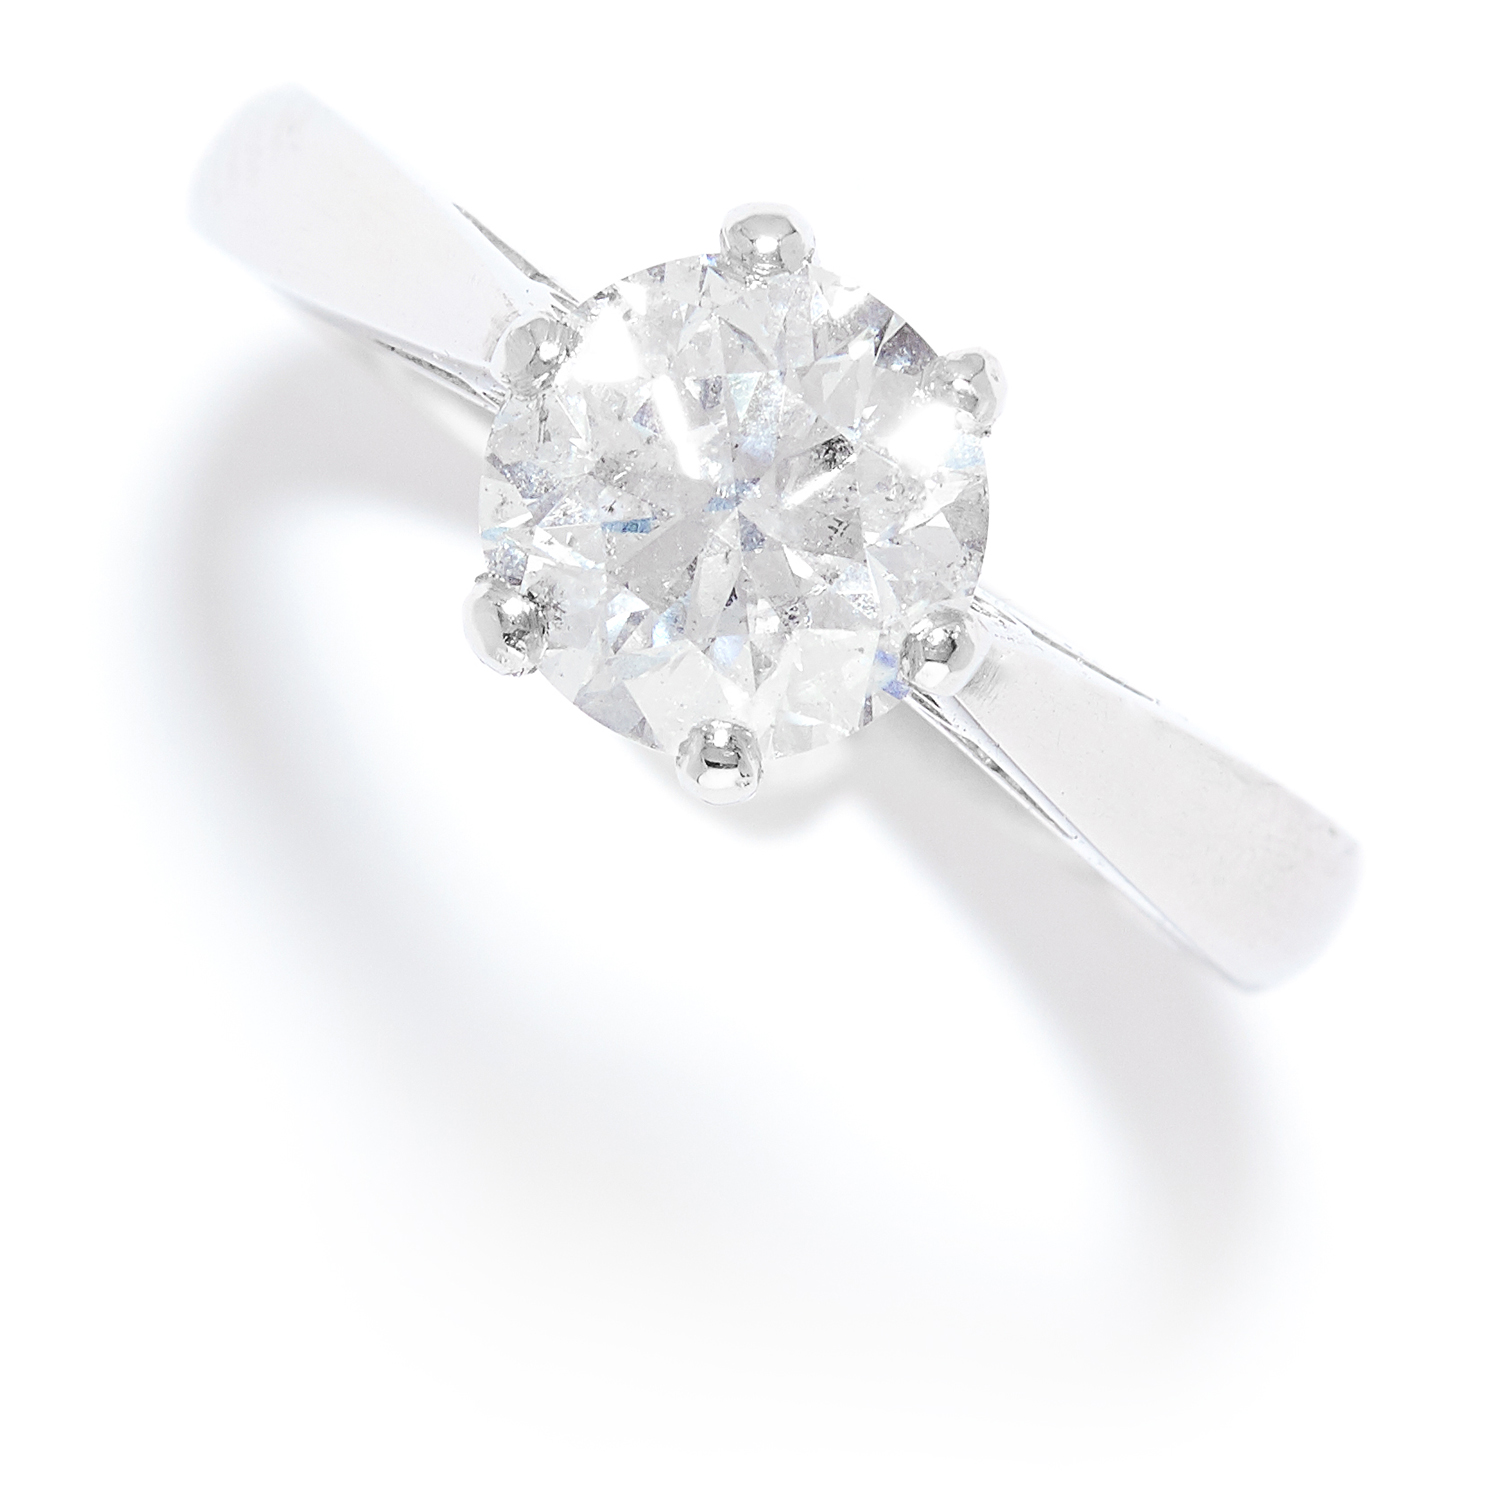 Los 32 - 1.53 CARAT SOLITAIRE DIAMOND RING in platinum, set with a round brilliant cut diamond of 1.53